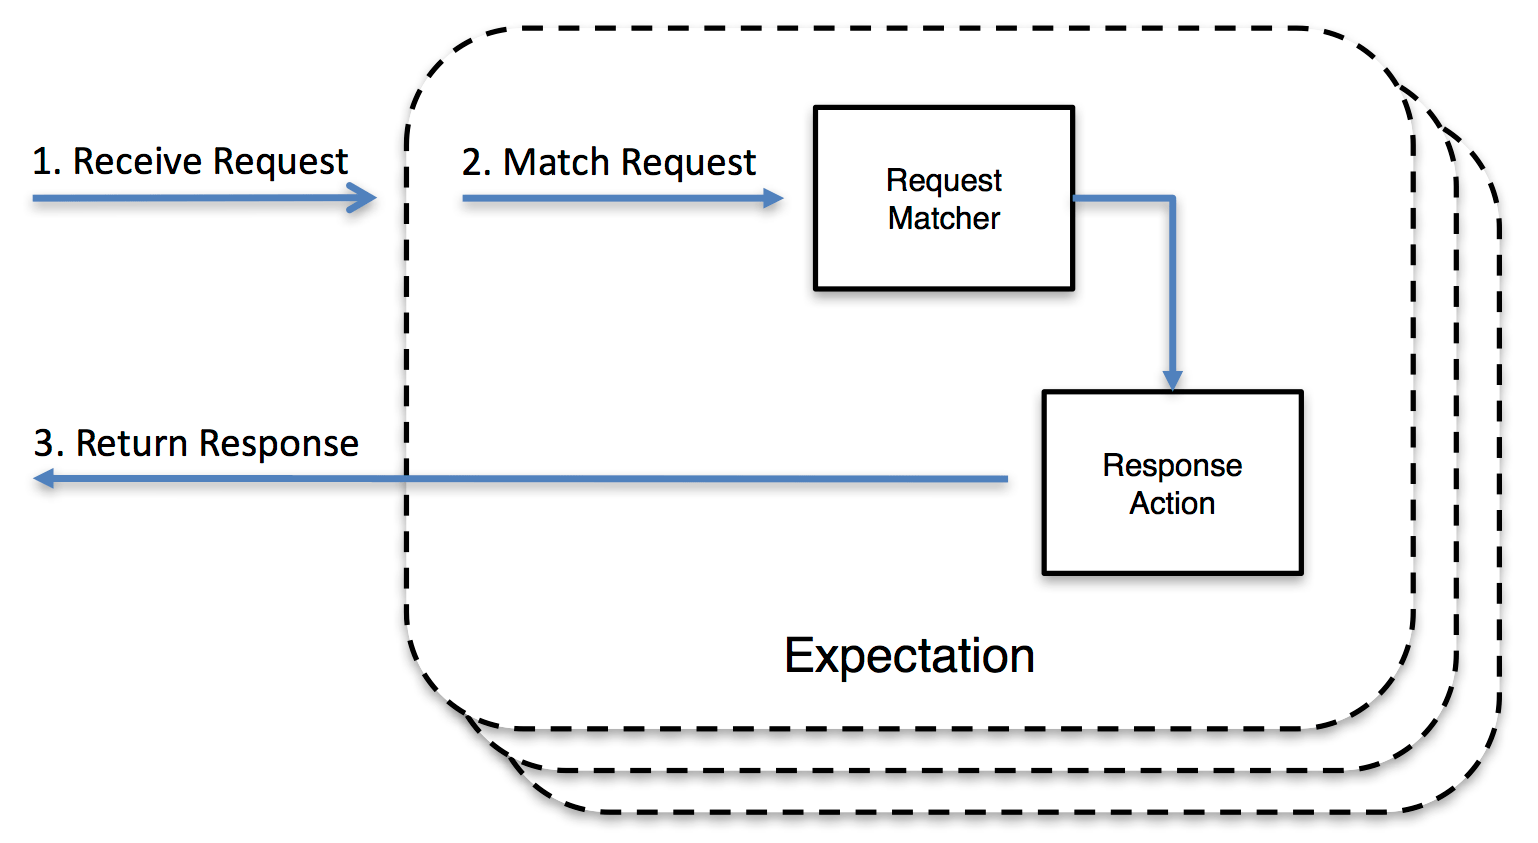 Response Action Expectation